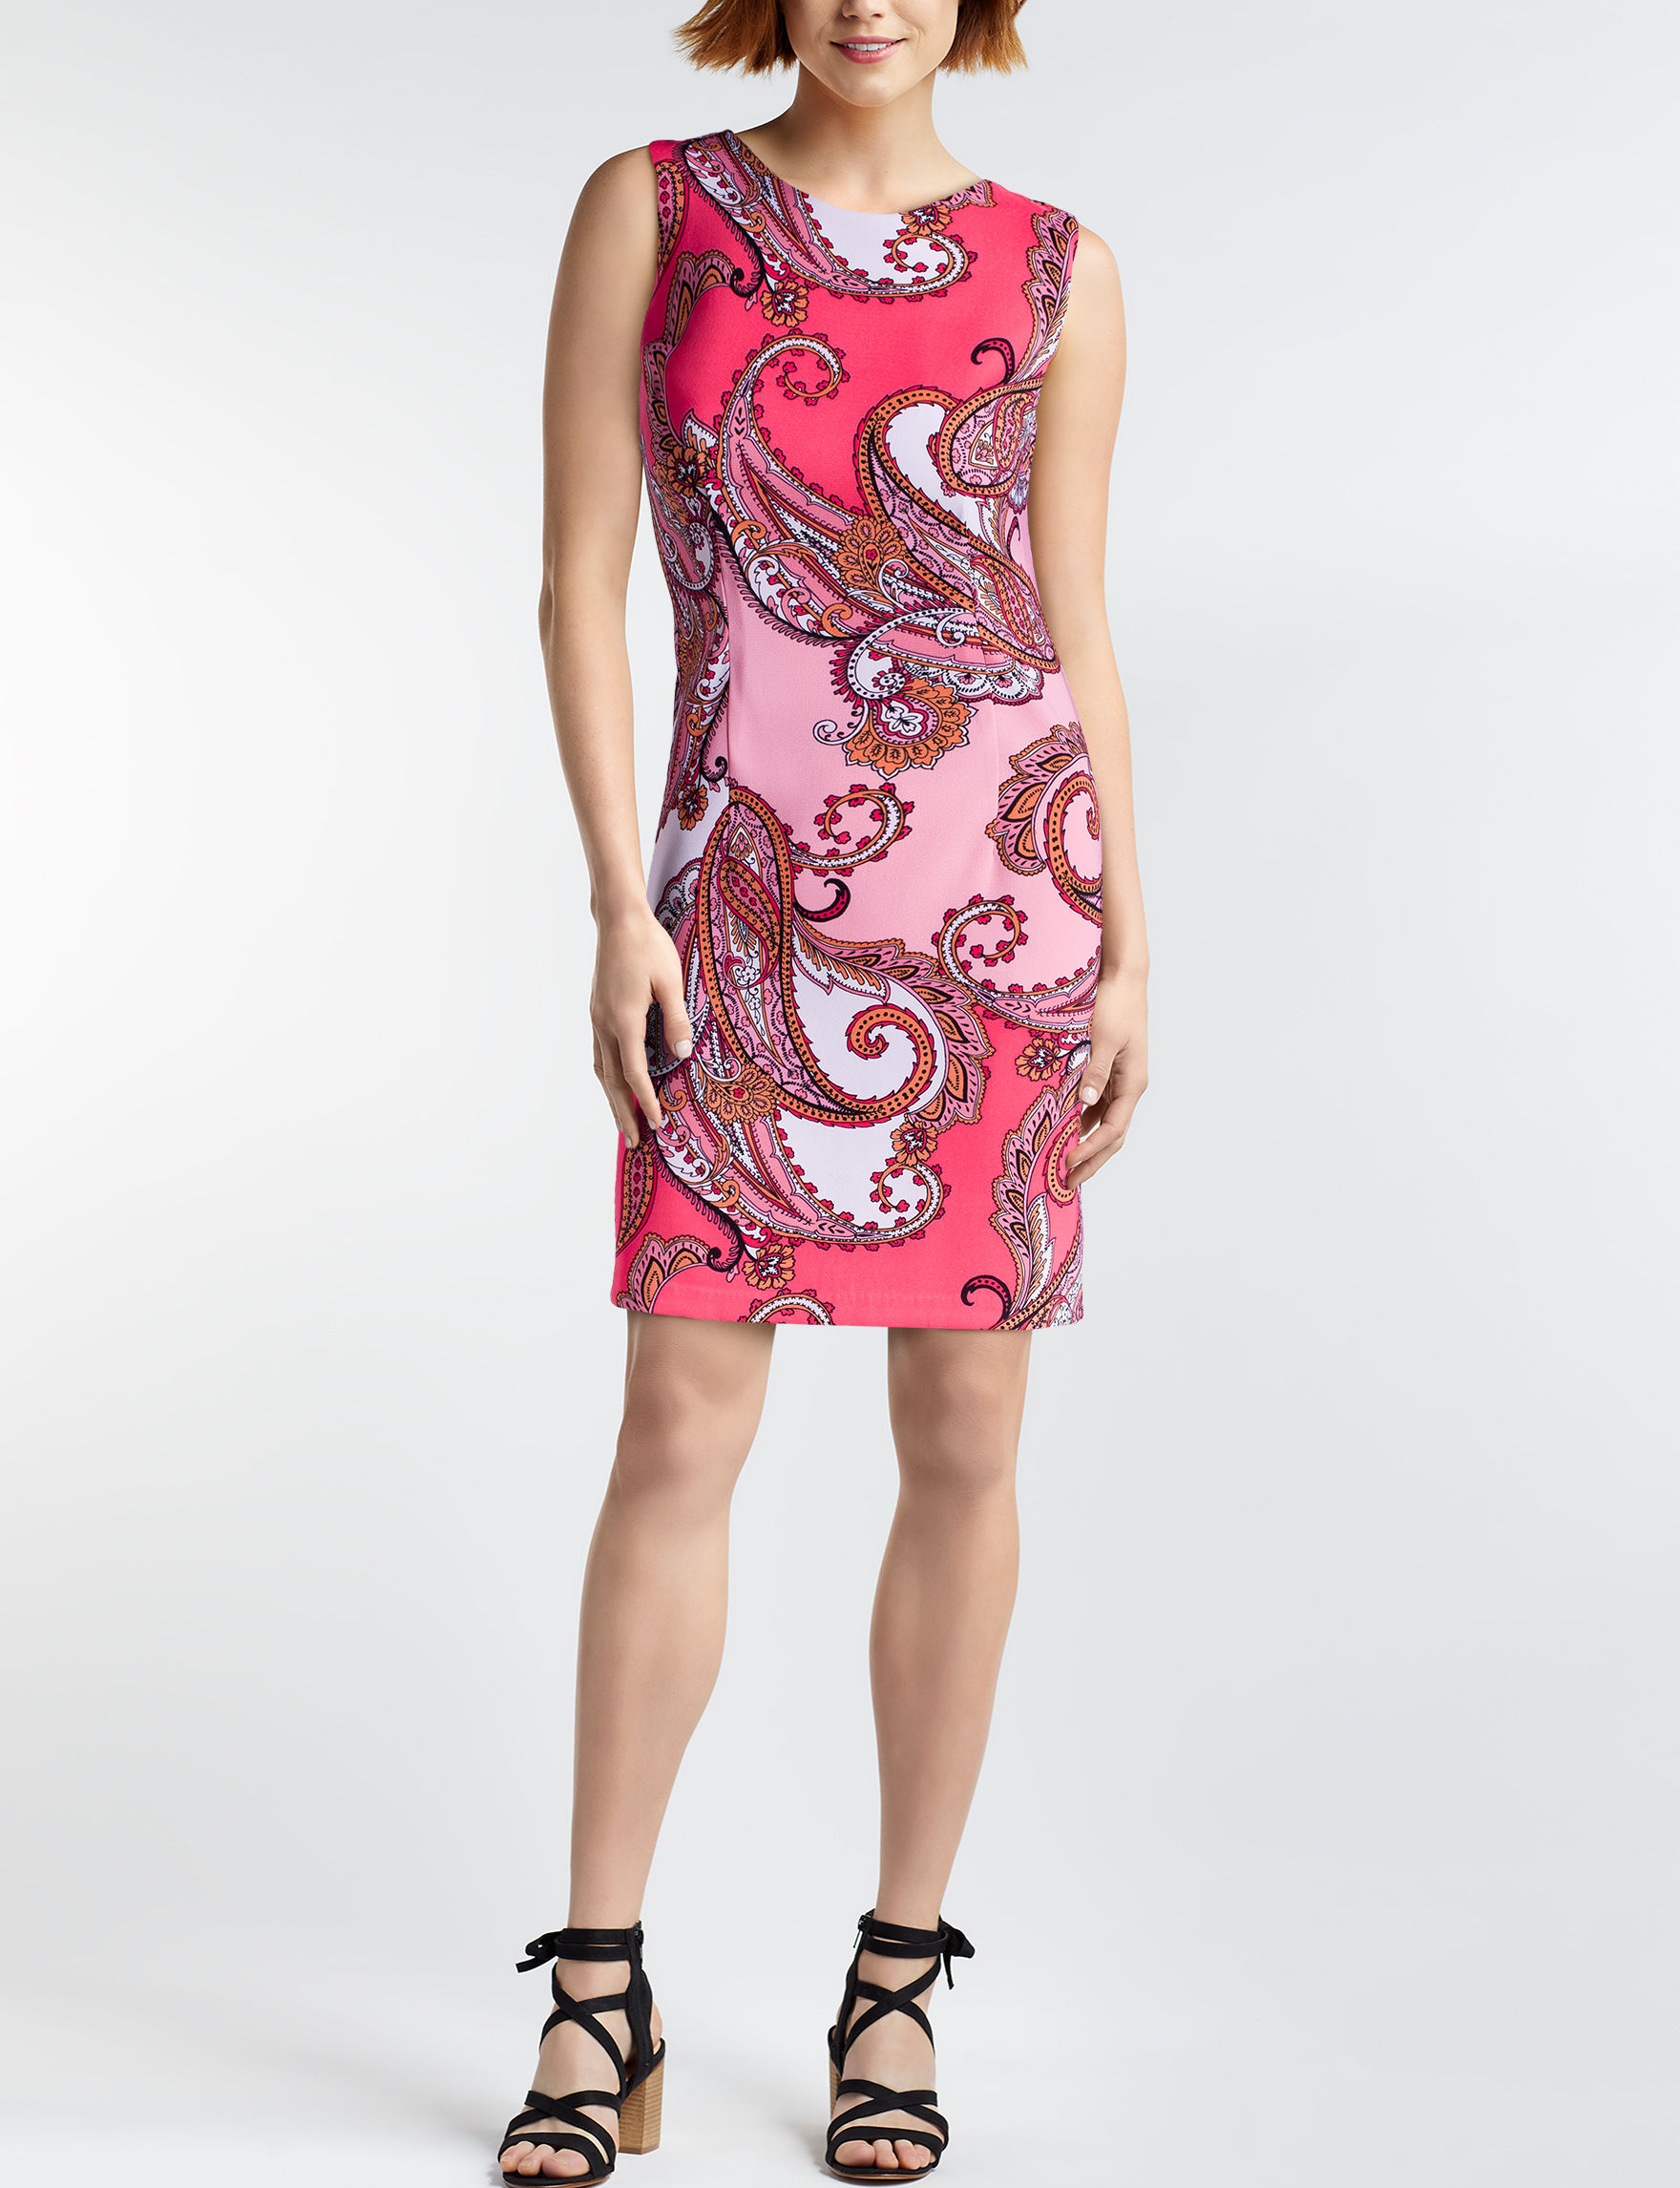 A. Byer Pink Paisley Everyday & Casual Sheath Dresses